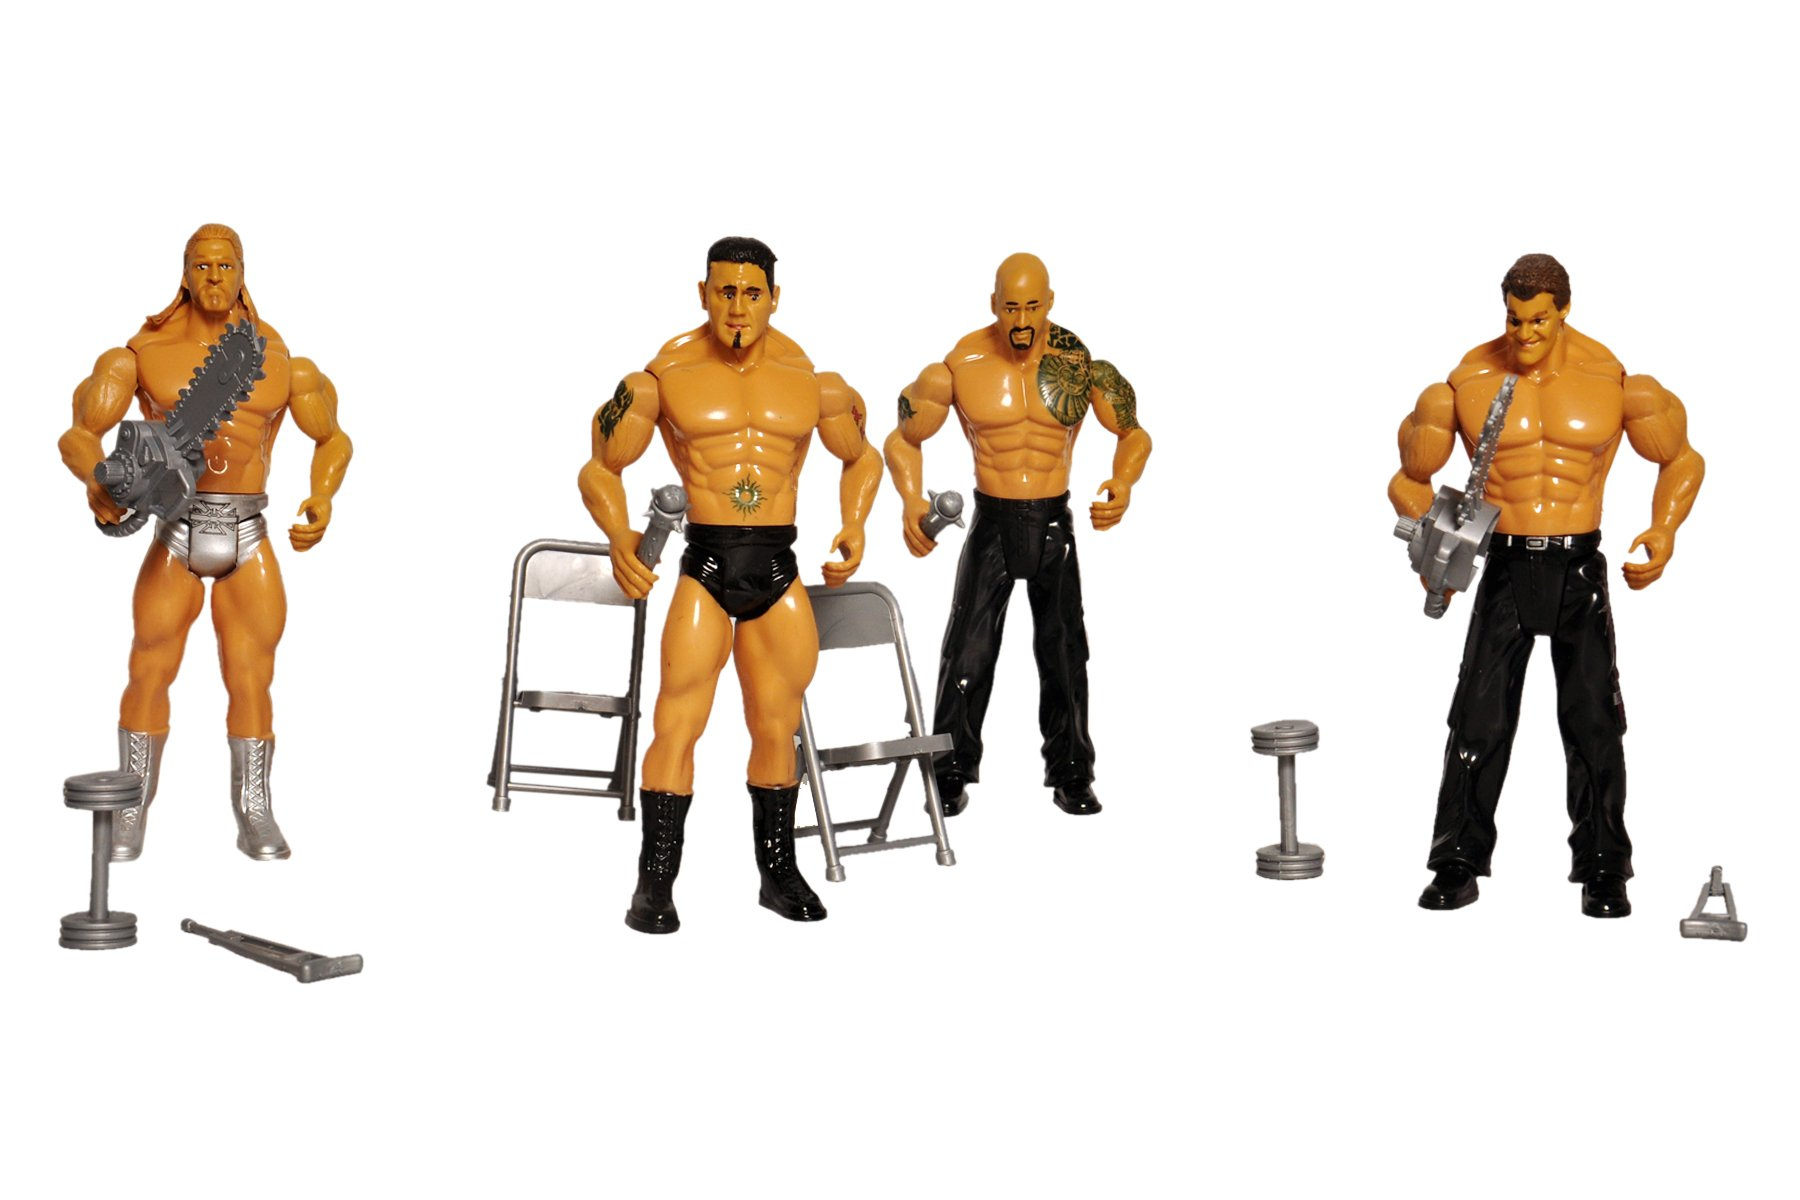 Toyshine Pack of 4 WWE Action Figure Combo with Playing Accessories product image